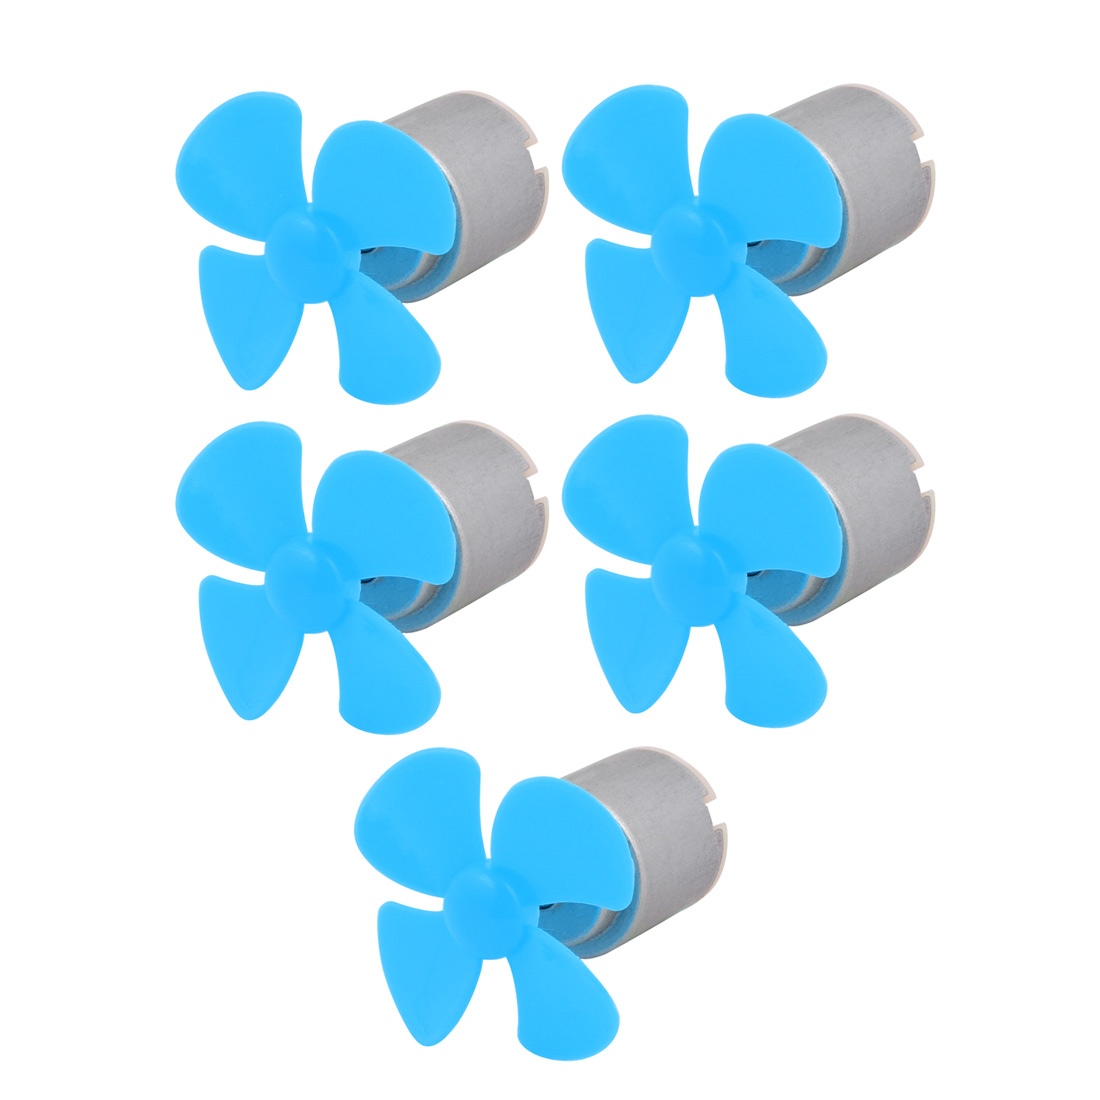 5pcs DC 3V 0.13A 11000RPM Strong Force Motor 4 Blades 40mm Blue Propeller for RC Aircraft